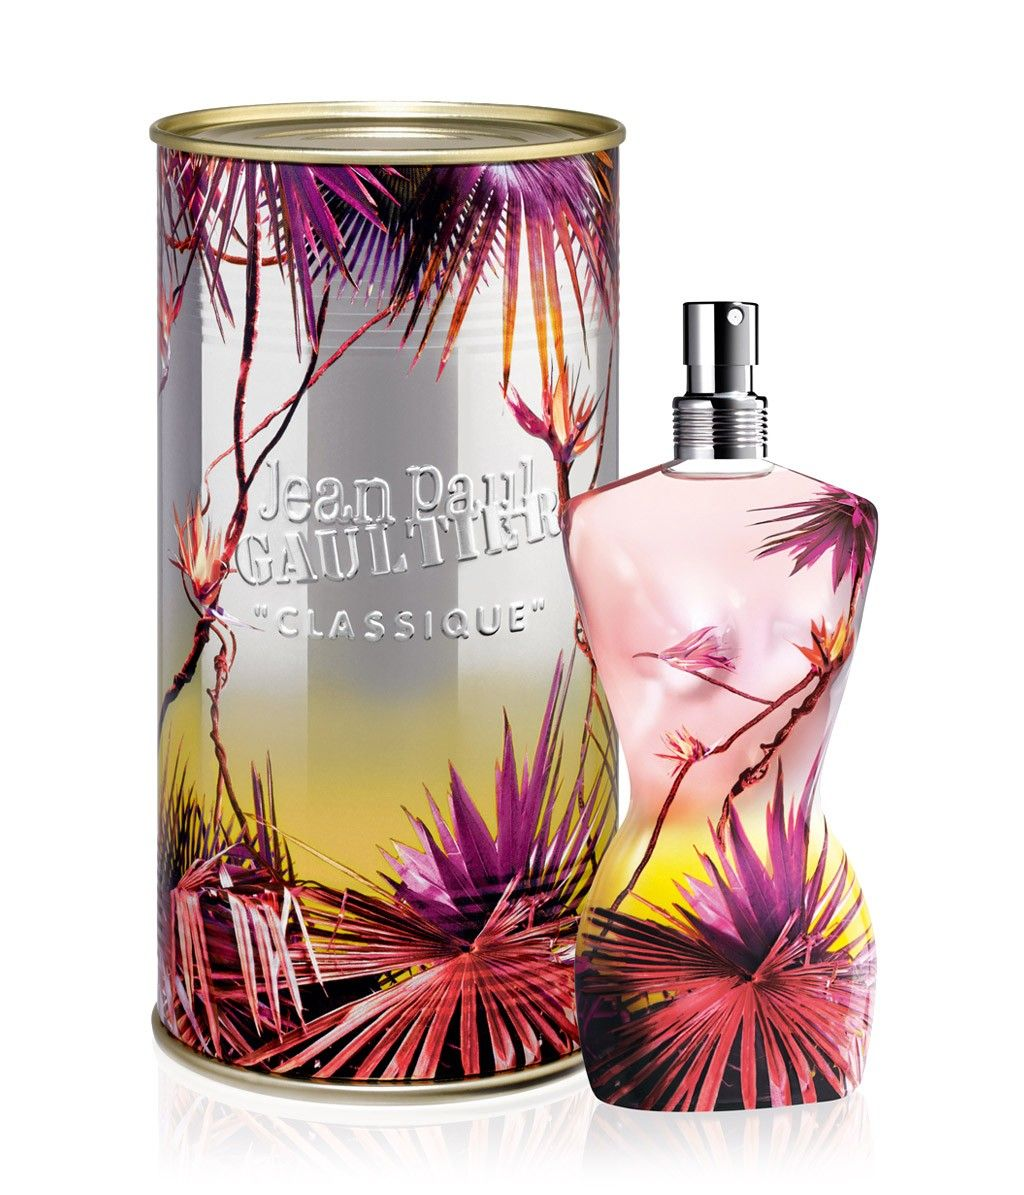 jean paul gaultier classique sommerduft perfume in 2019. Black Bedroom Furniture Sets. Home Design Ideas